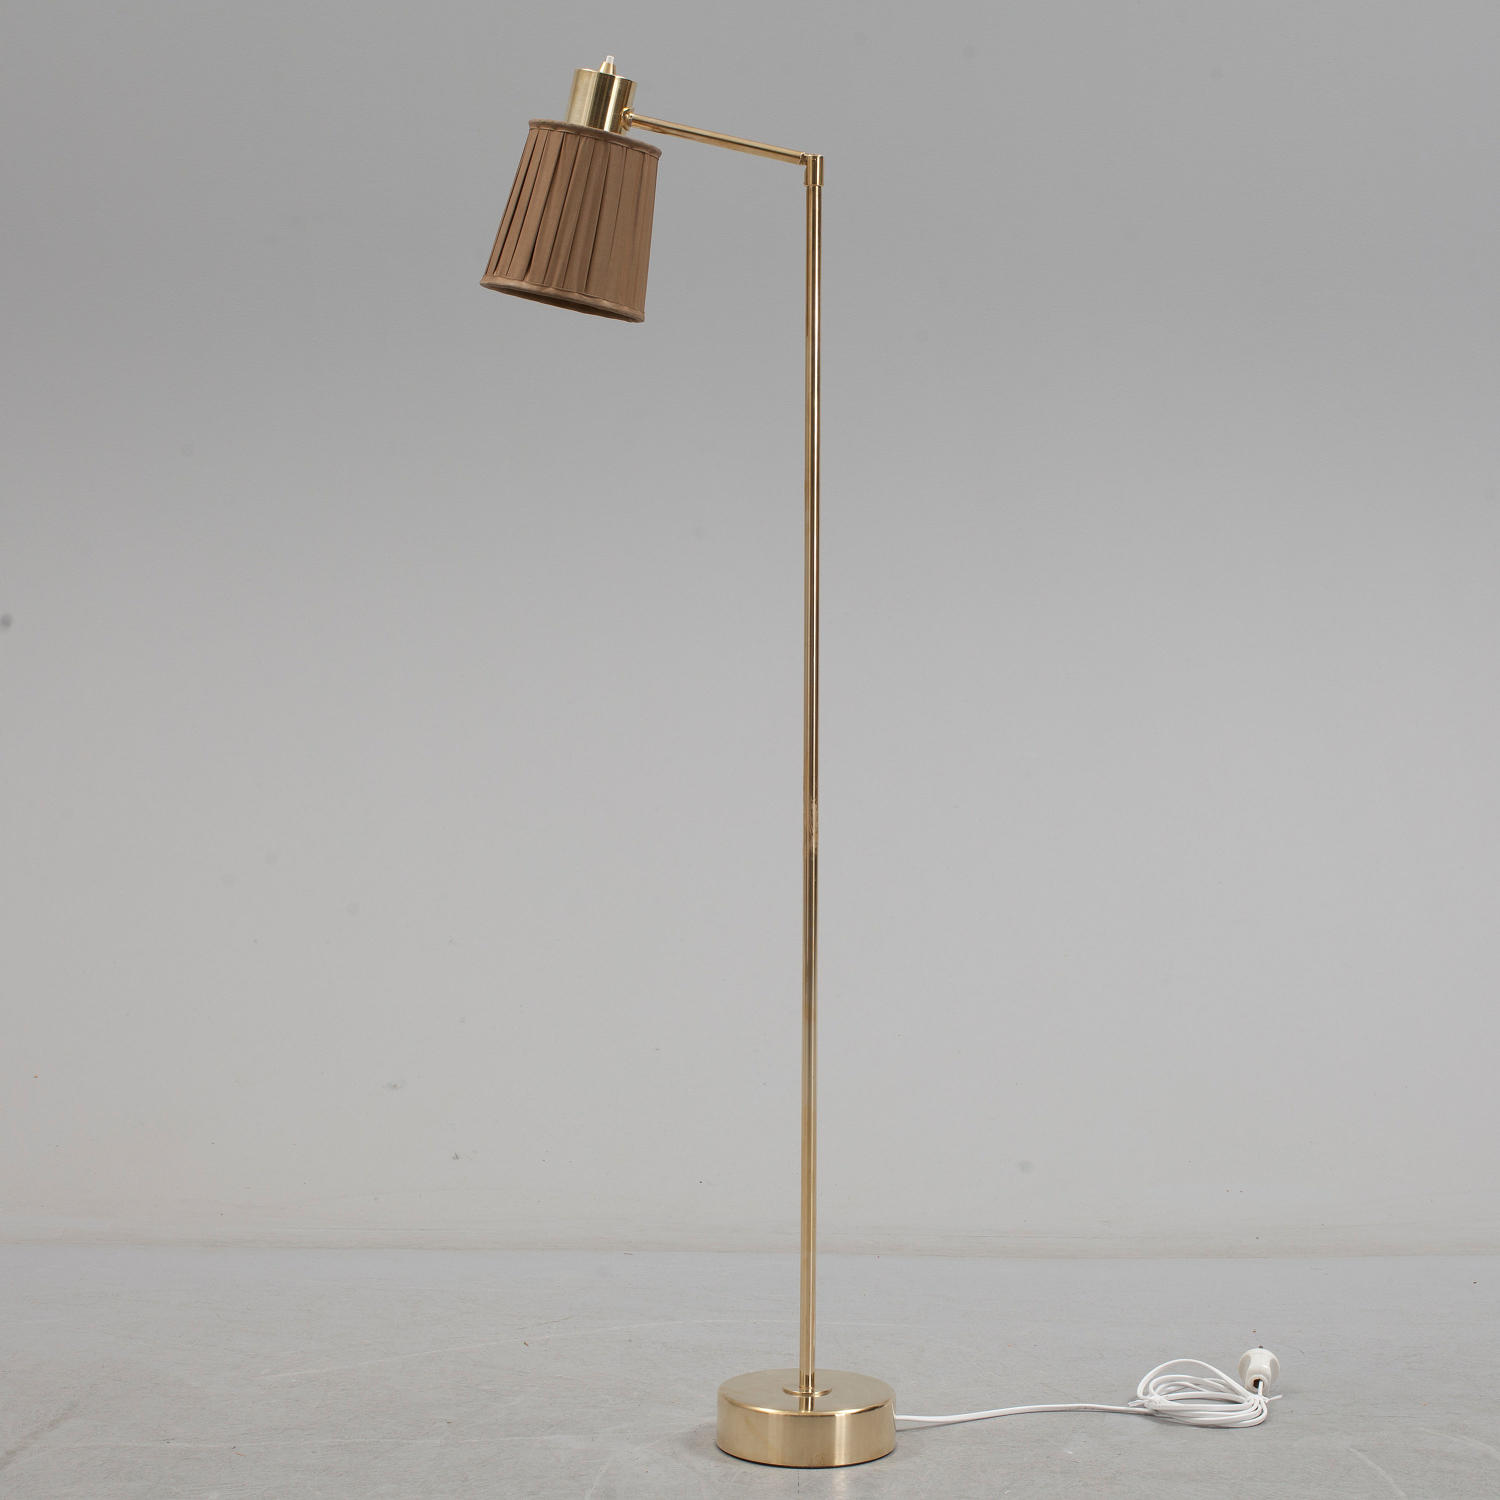 A Swedish brass swing arm standard lamp